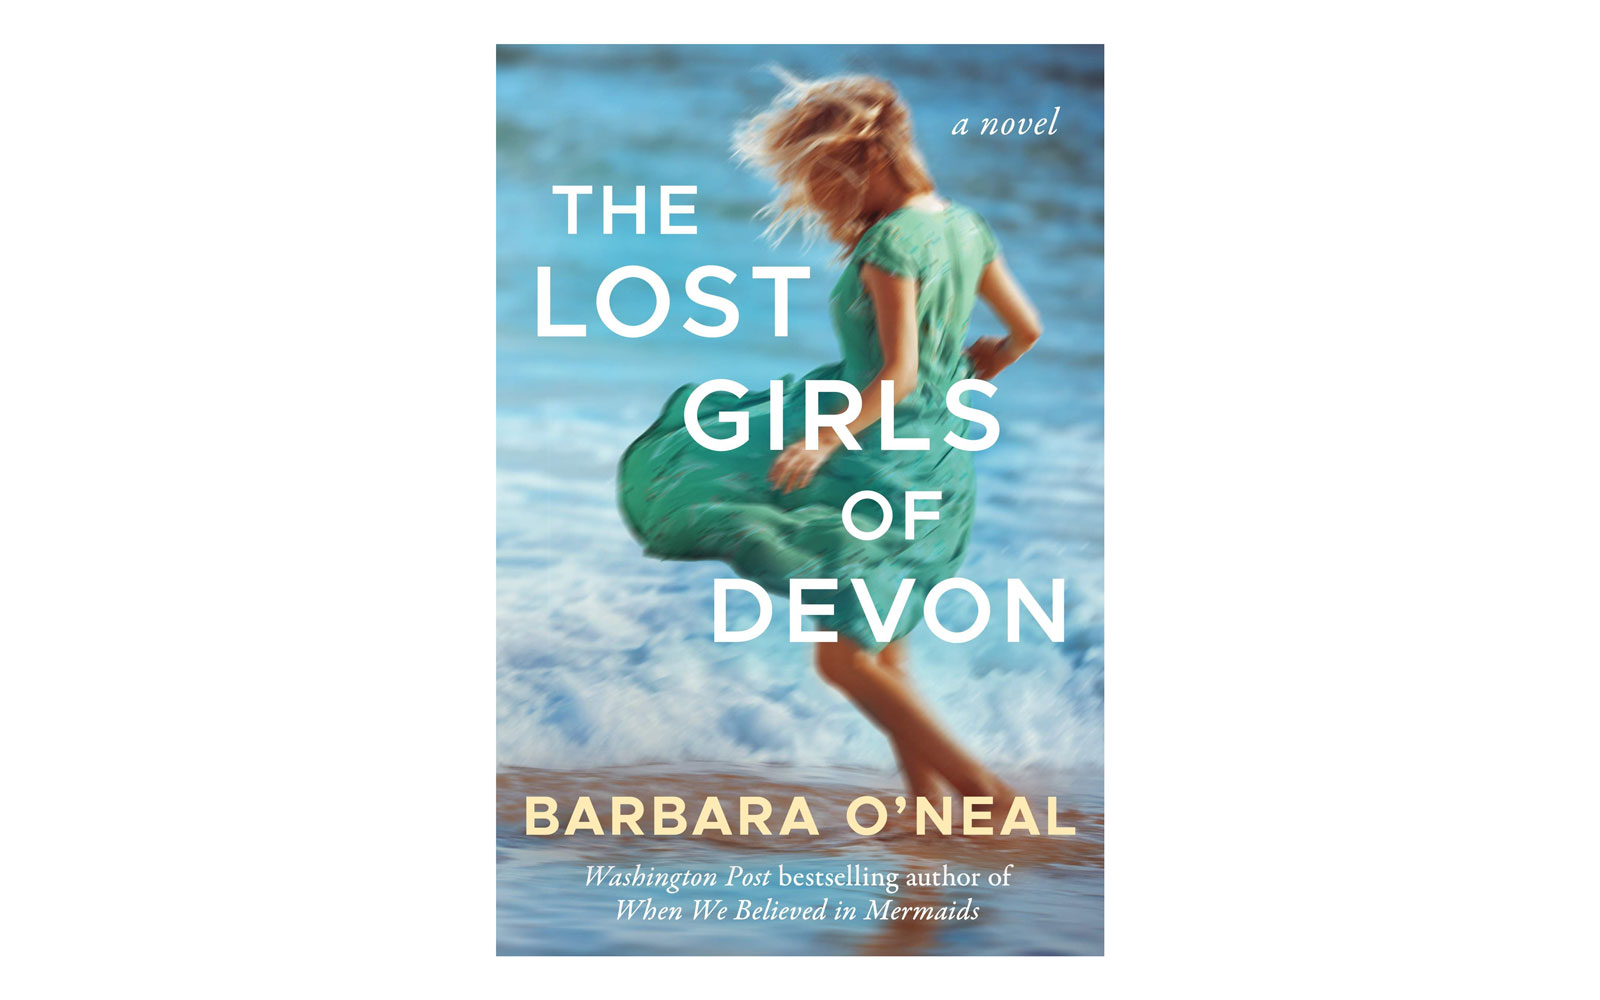 11.  The Lost Girls of Devon  by Barbara O'Neal